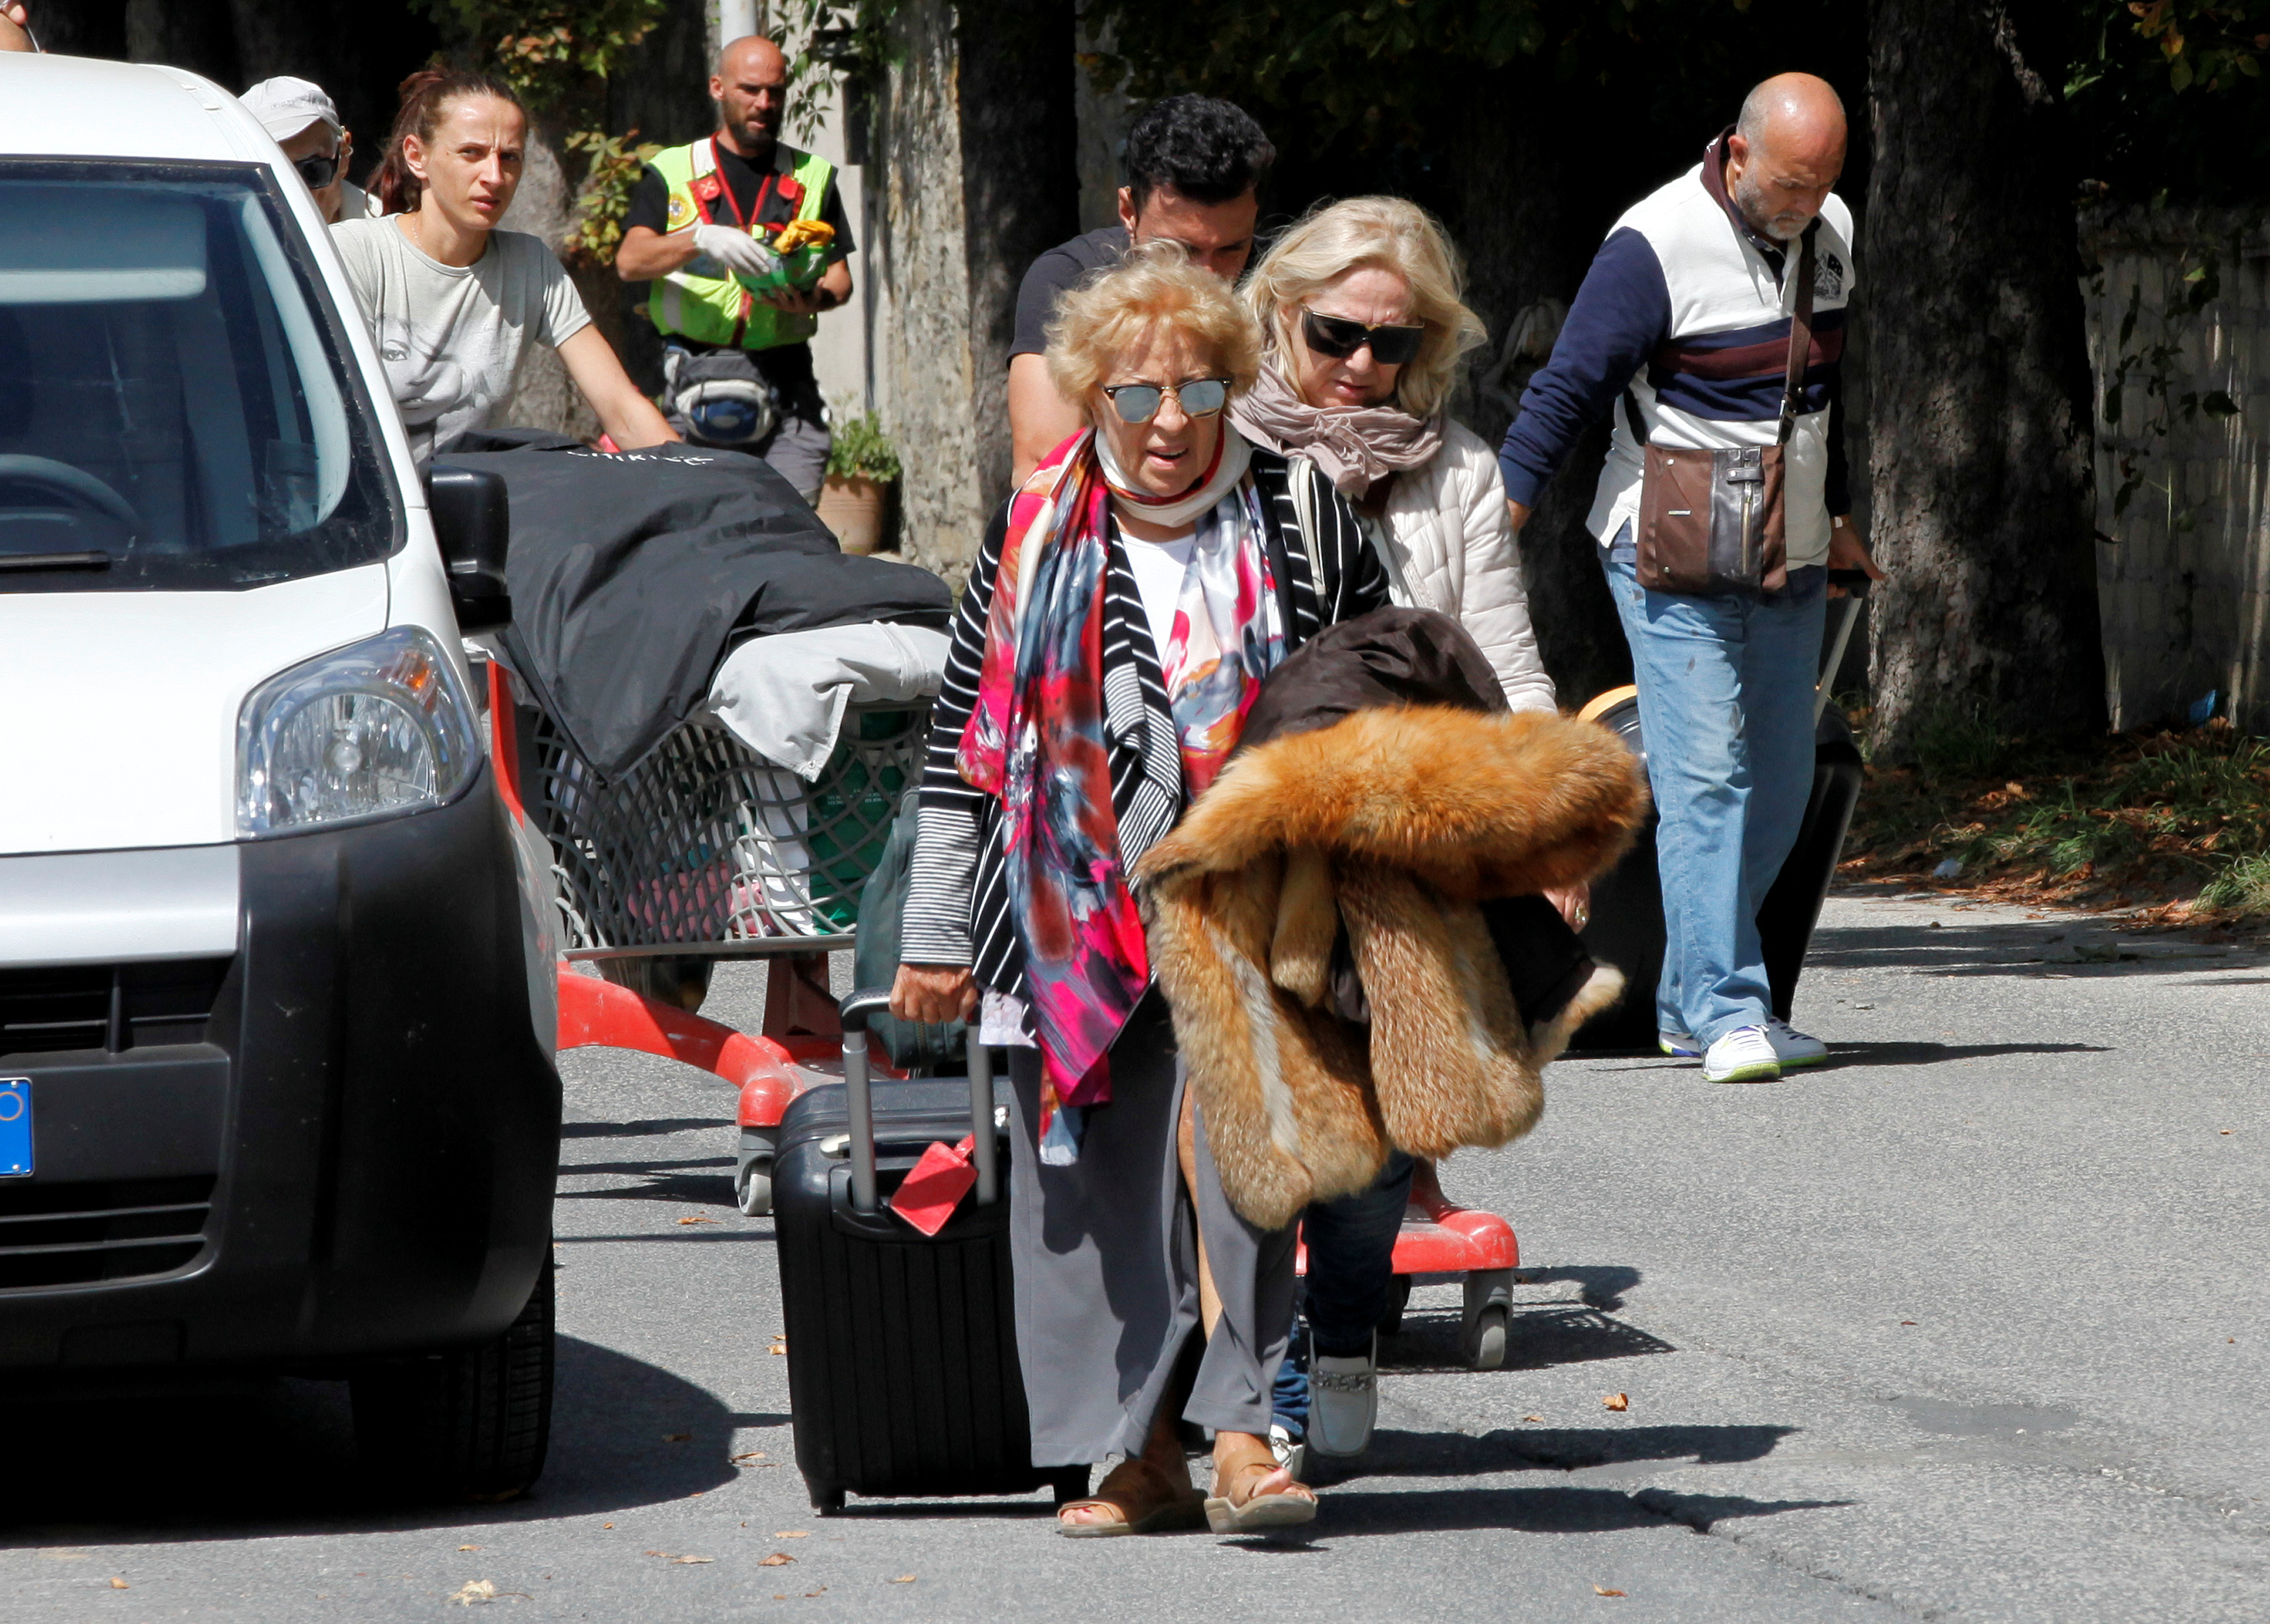 People walk with their belongings following an earthquake in Amatrice, central Italy. Photo by Ciro De Luca/Reuters